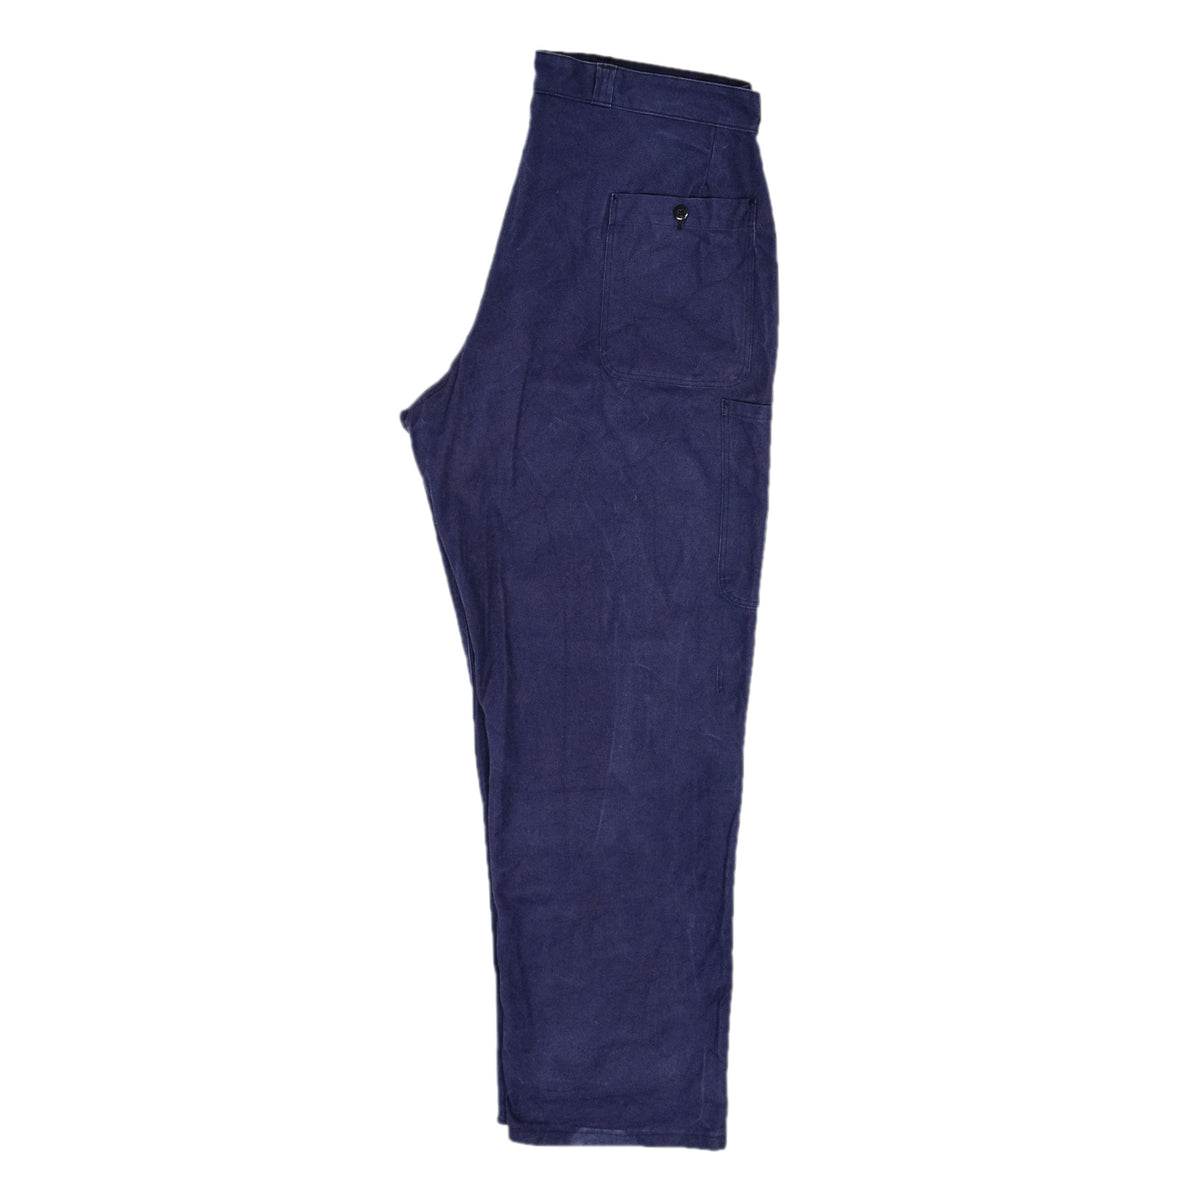 Vintage Indigo Blue French Work Pant Utility Trousers Made in France 38 W 30 L back